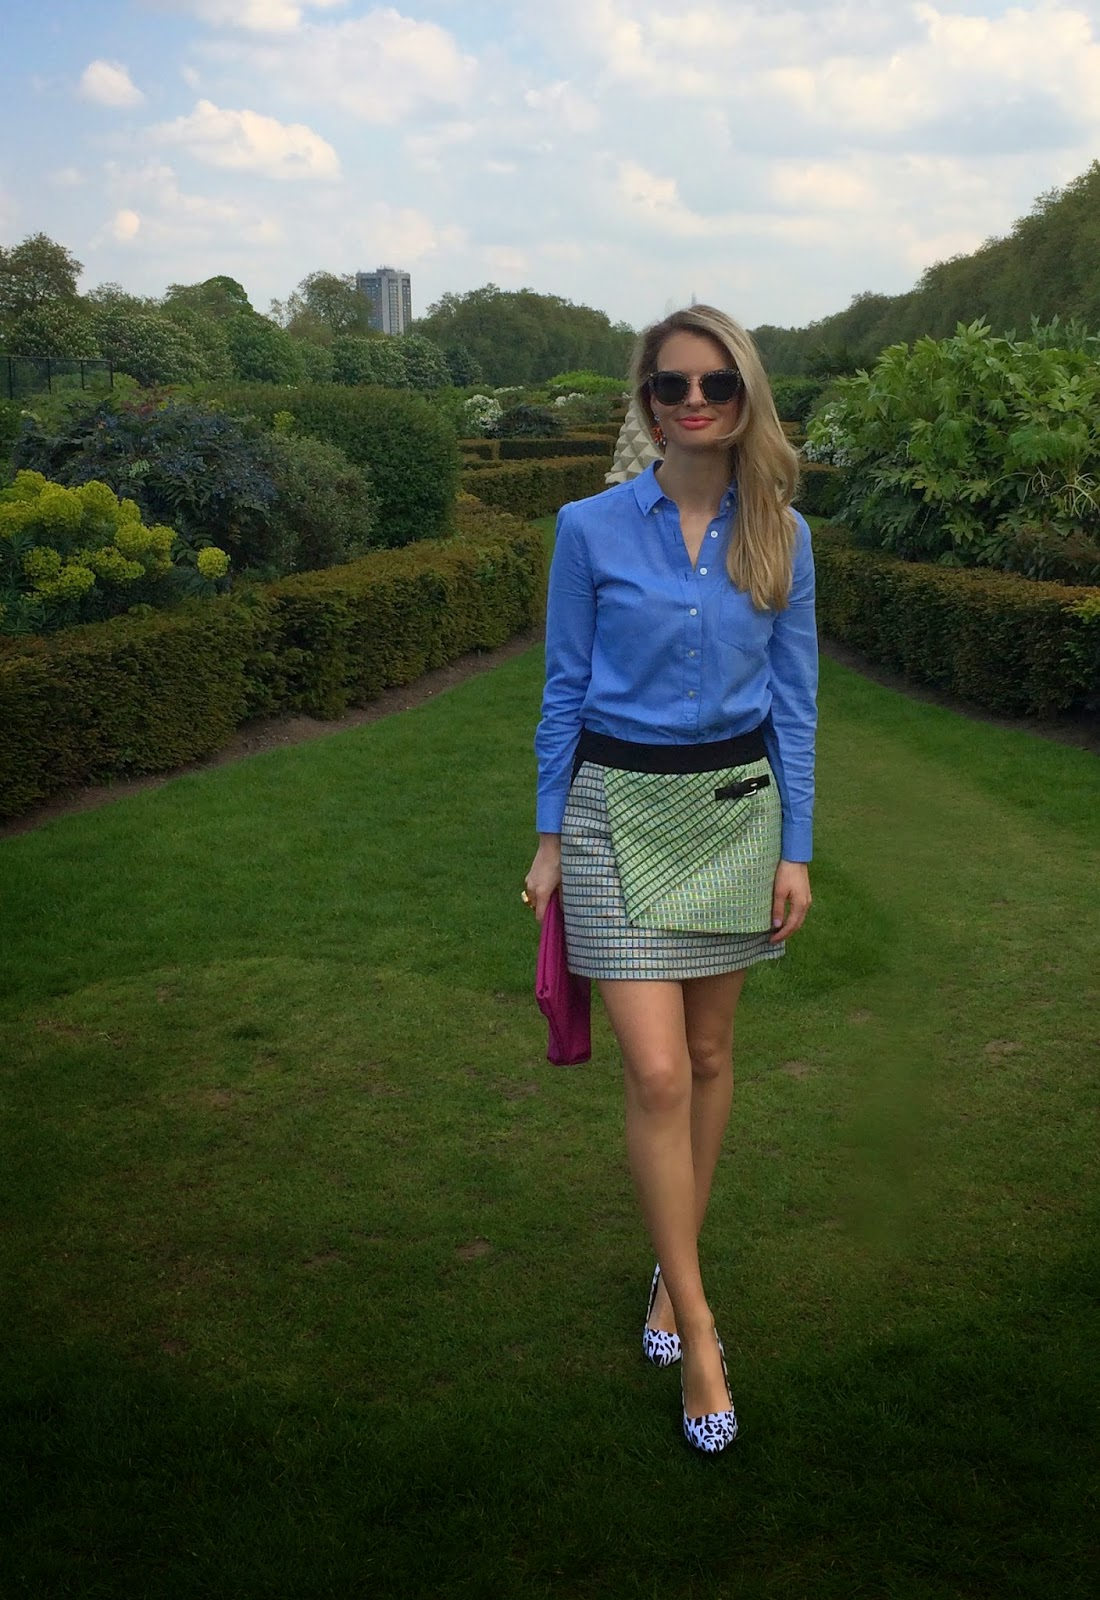 tweed skirt, karen millen, karen millen skirt, karen millen tweed wrap skirt, blue shirt, skirt and shirt, asos heels, asos shoes, pink clutch, miu miu sunglasses, miu miu eyewear, street style, london, london fashion blogger, chrissabella